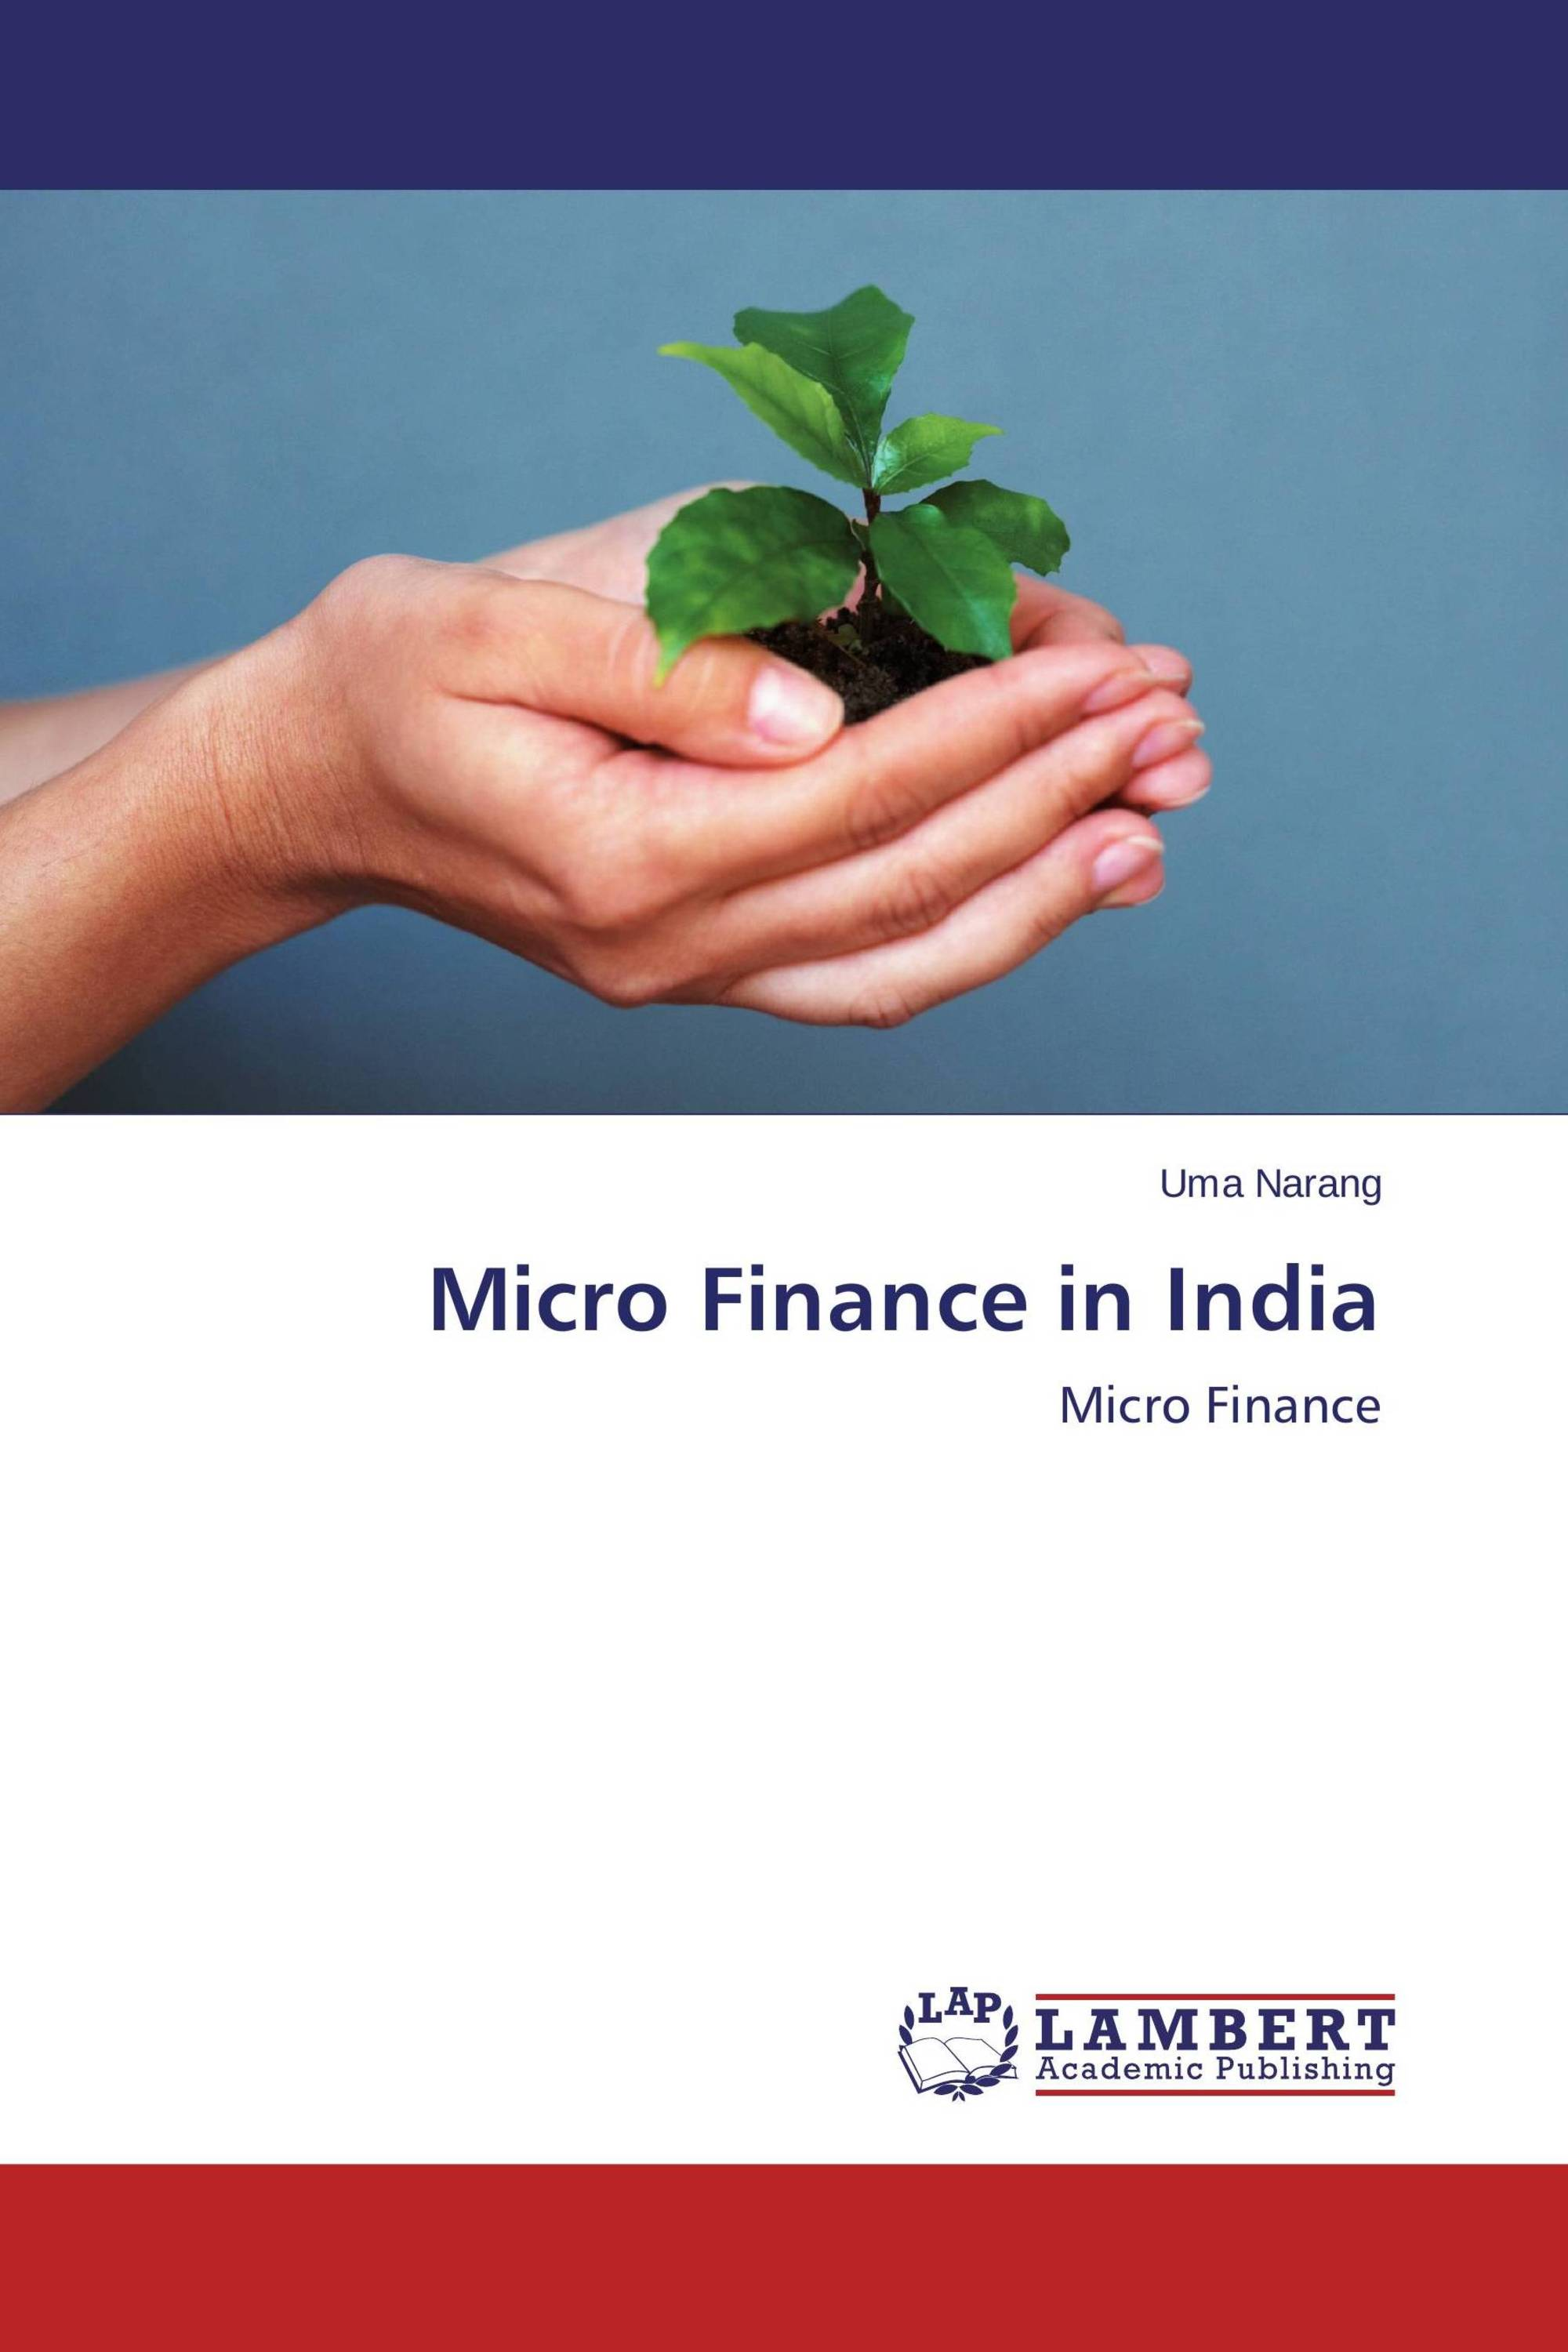 microfinance and its growth